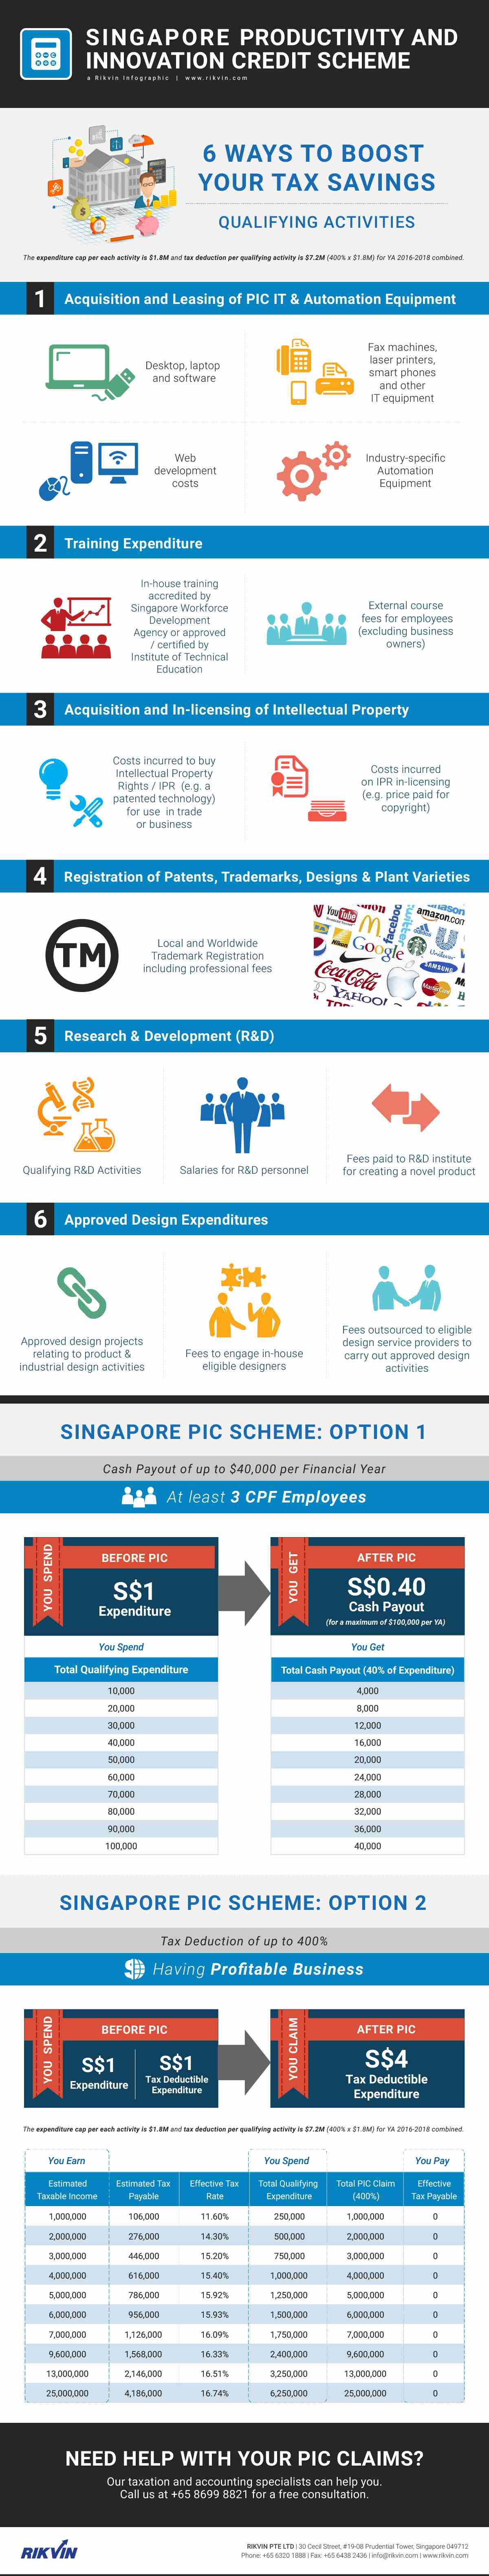 singapore-productivity-and-innovation-credit-pic-scheme-infographic-rikvin Singapore Productivity and Innovation Credit Scheme